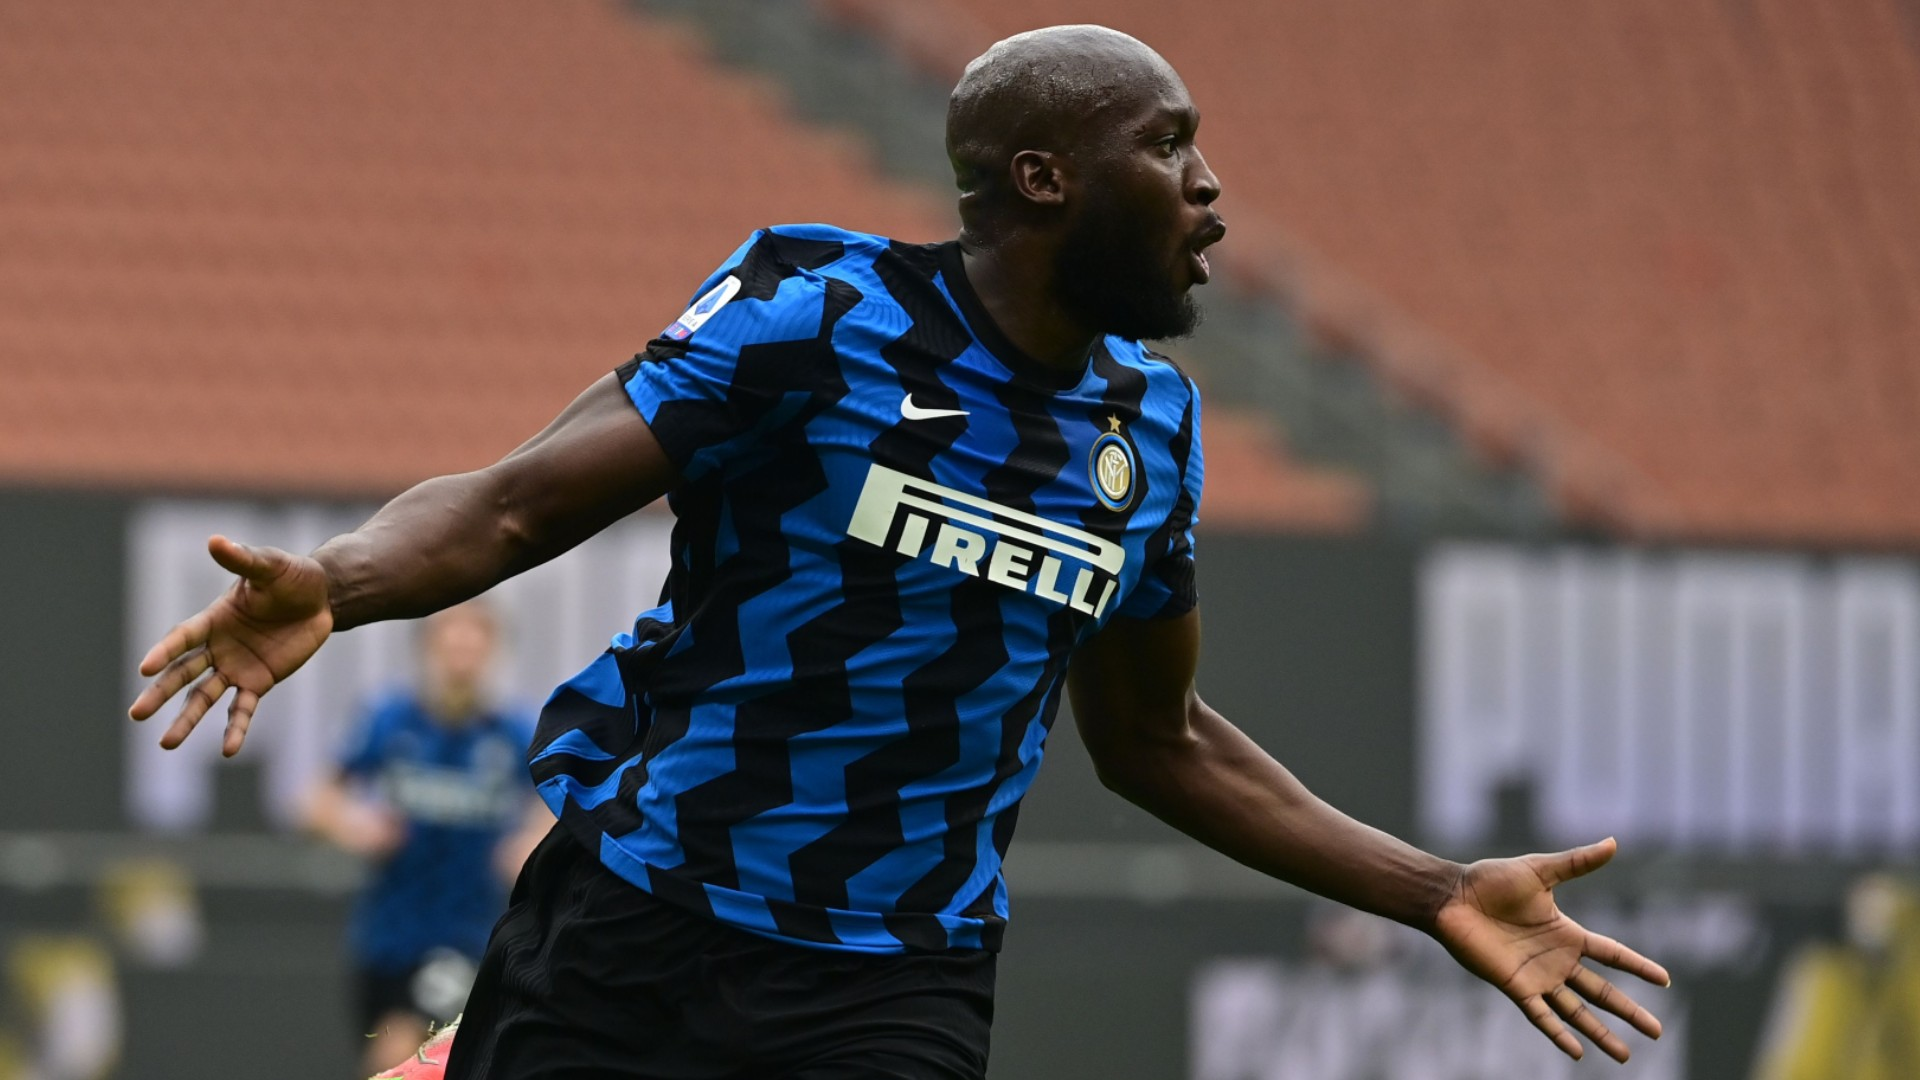 Chelsea move for Lukaku sees Inter ultras issue warning to club amid transfer frustrations